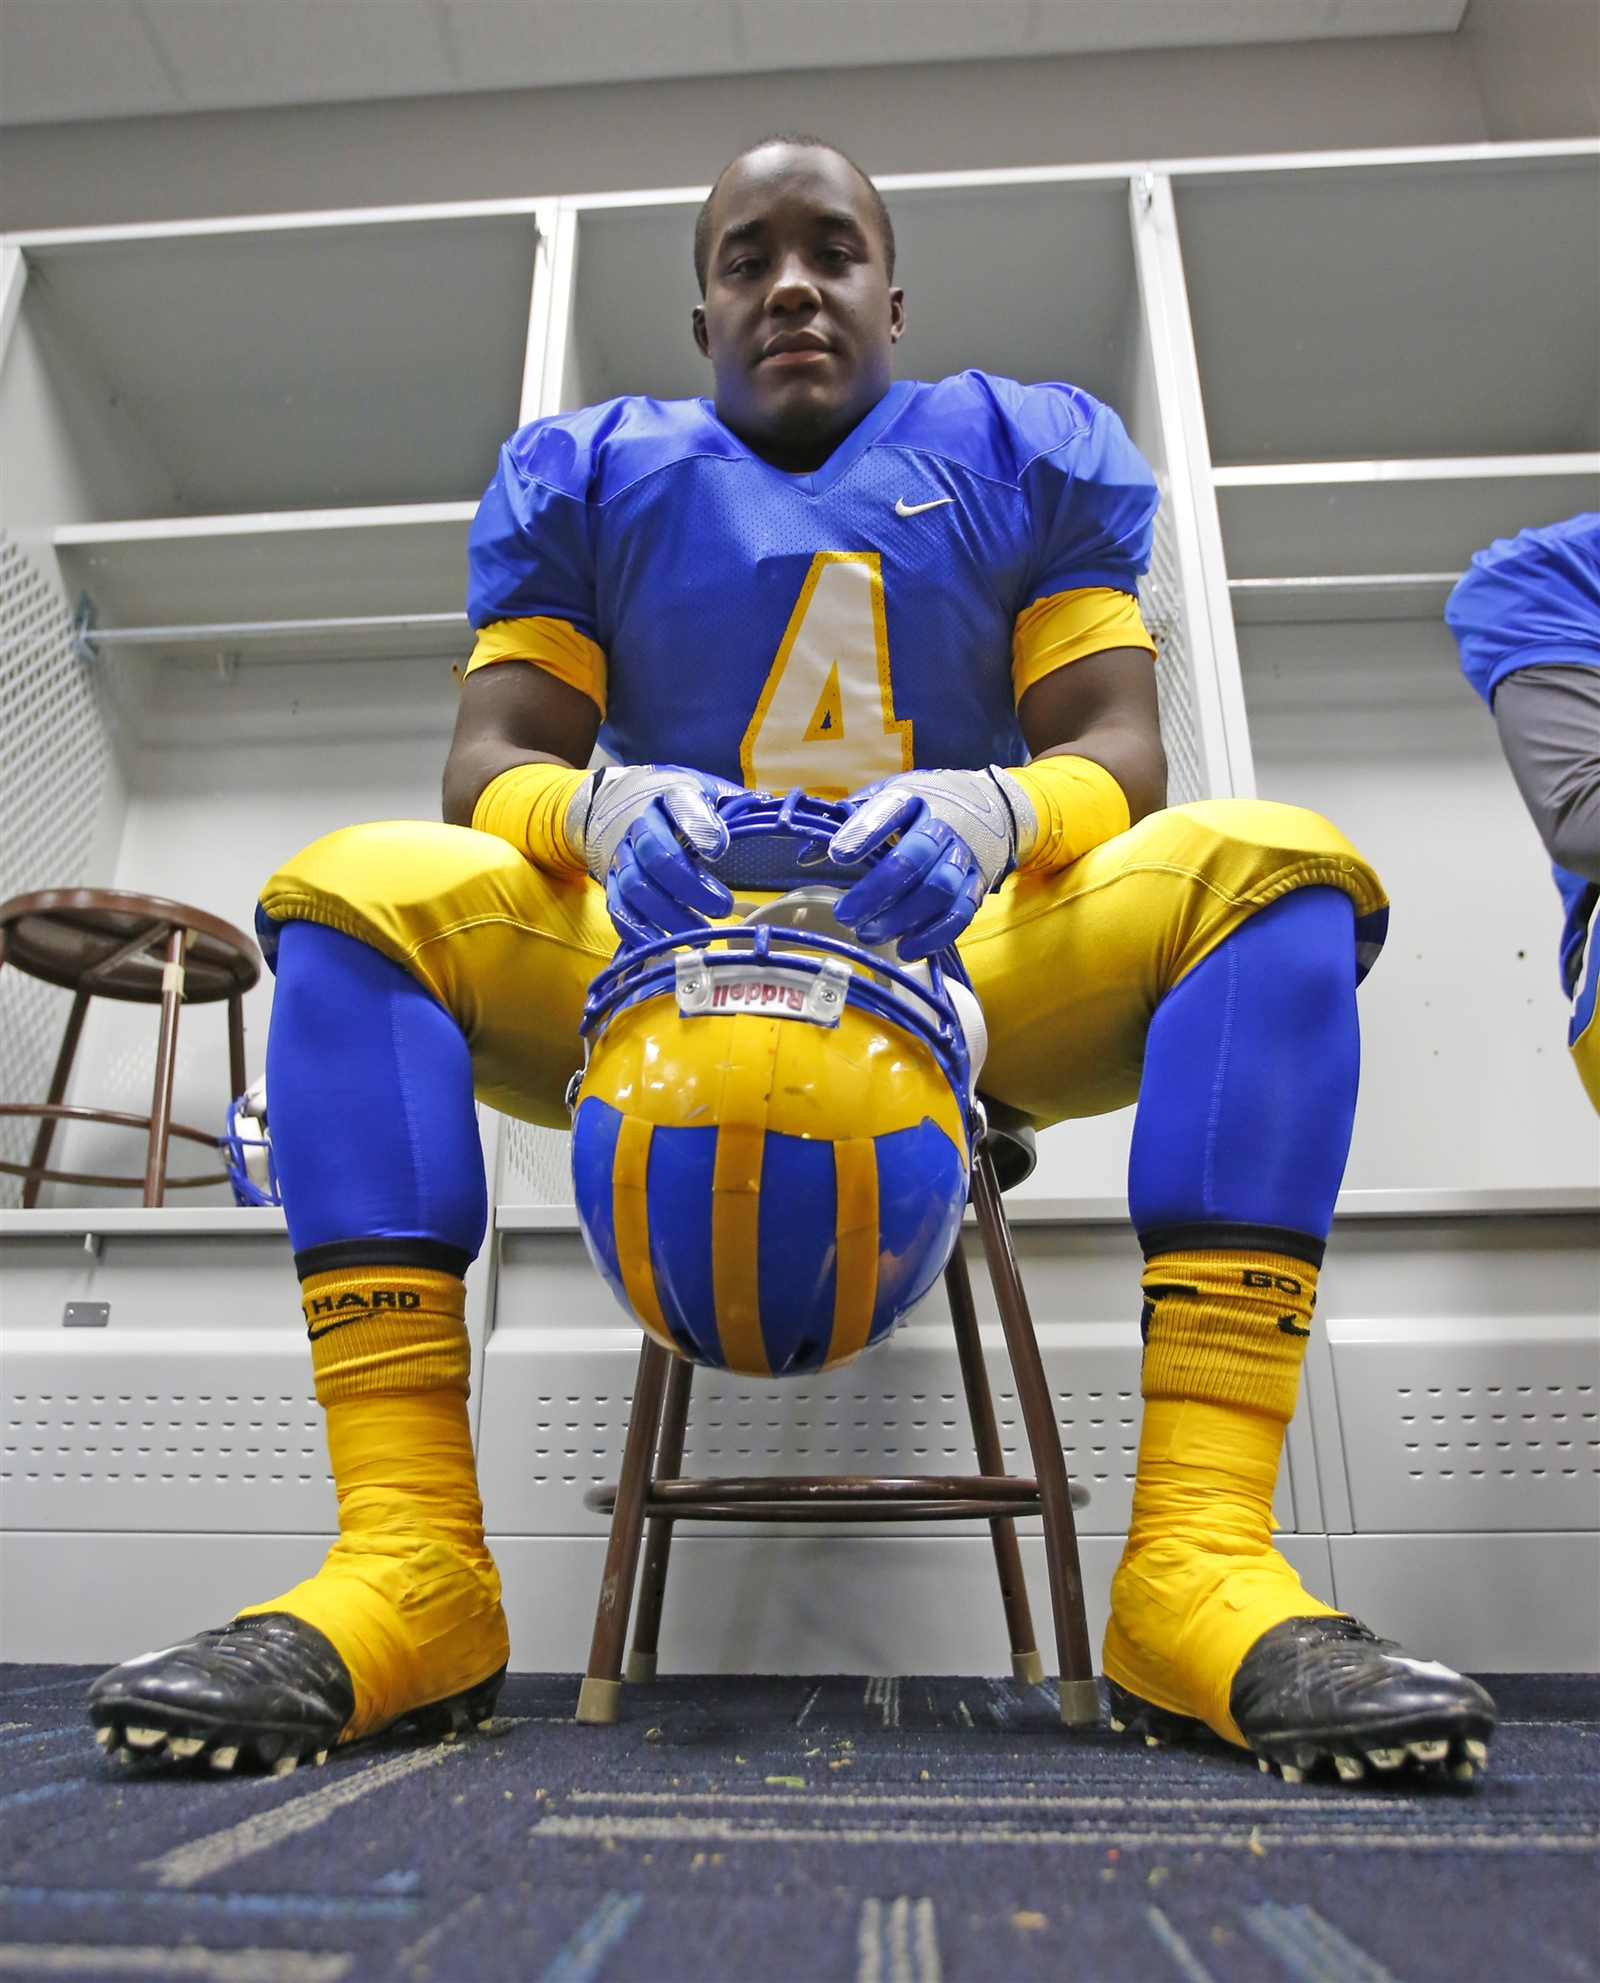 Cleveland Hill running back Matt Eldridge sits at a locker prior to the game.